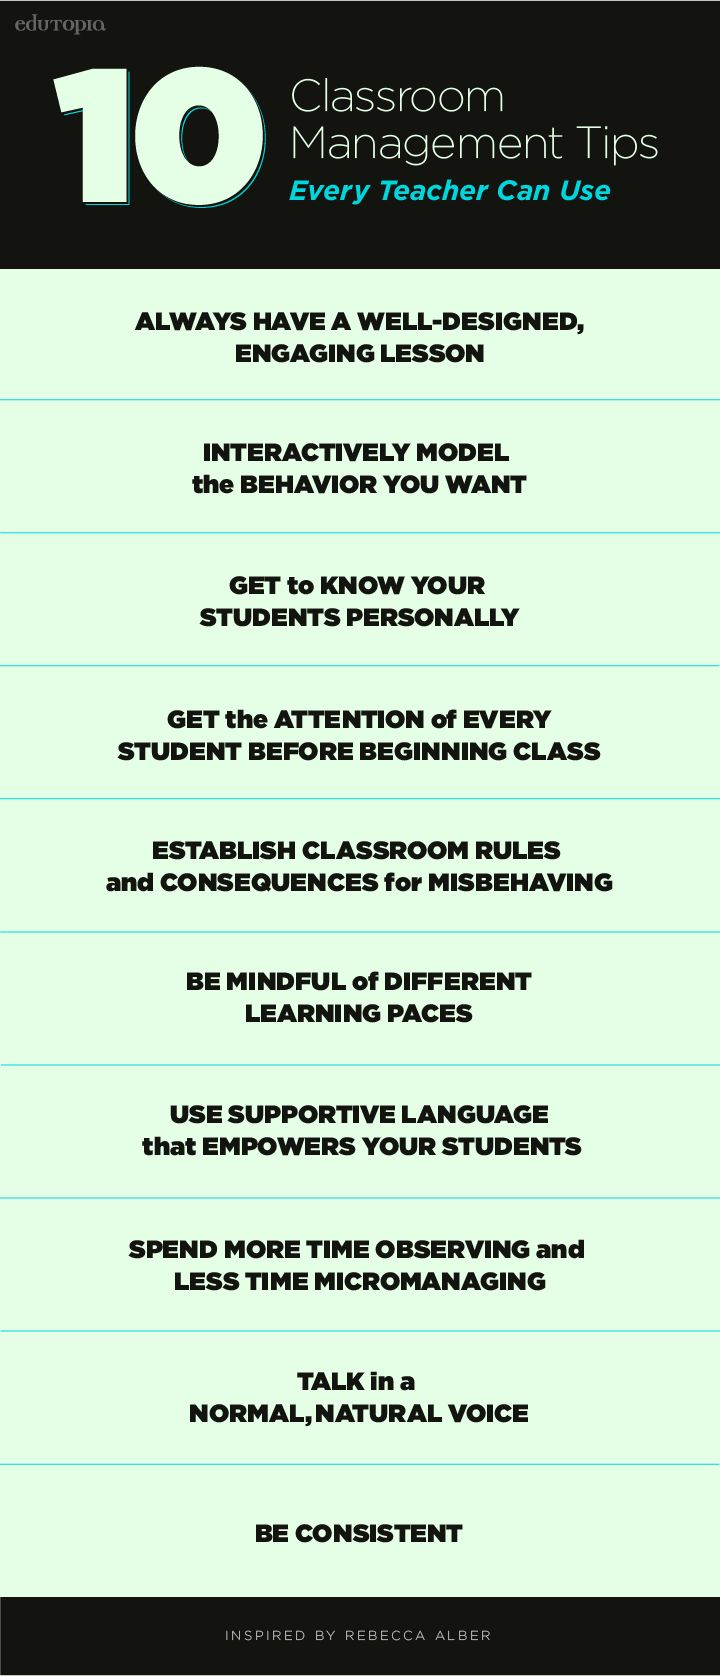 best classroom management tips images teaching 10 classroom management tips every teacher can use